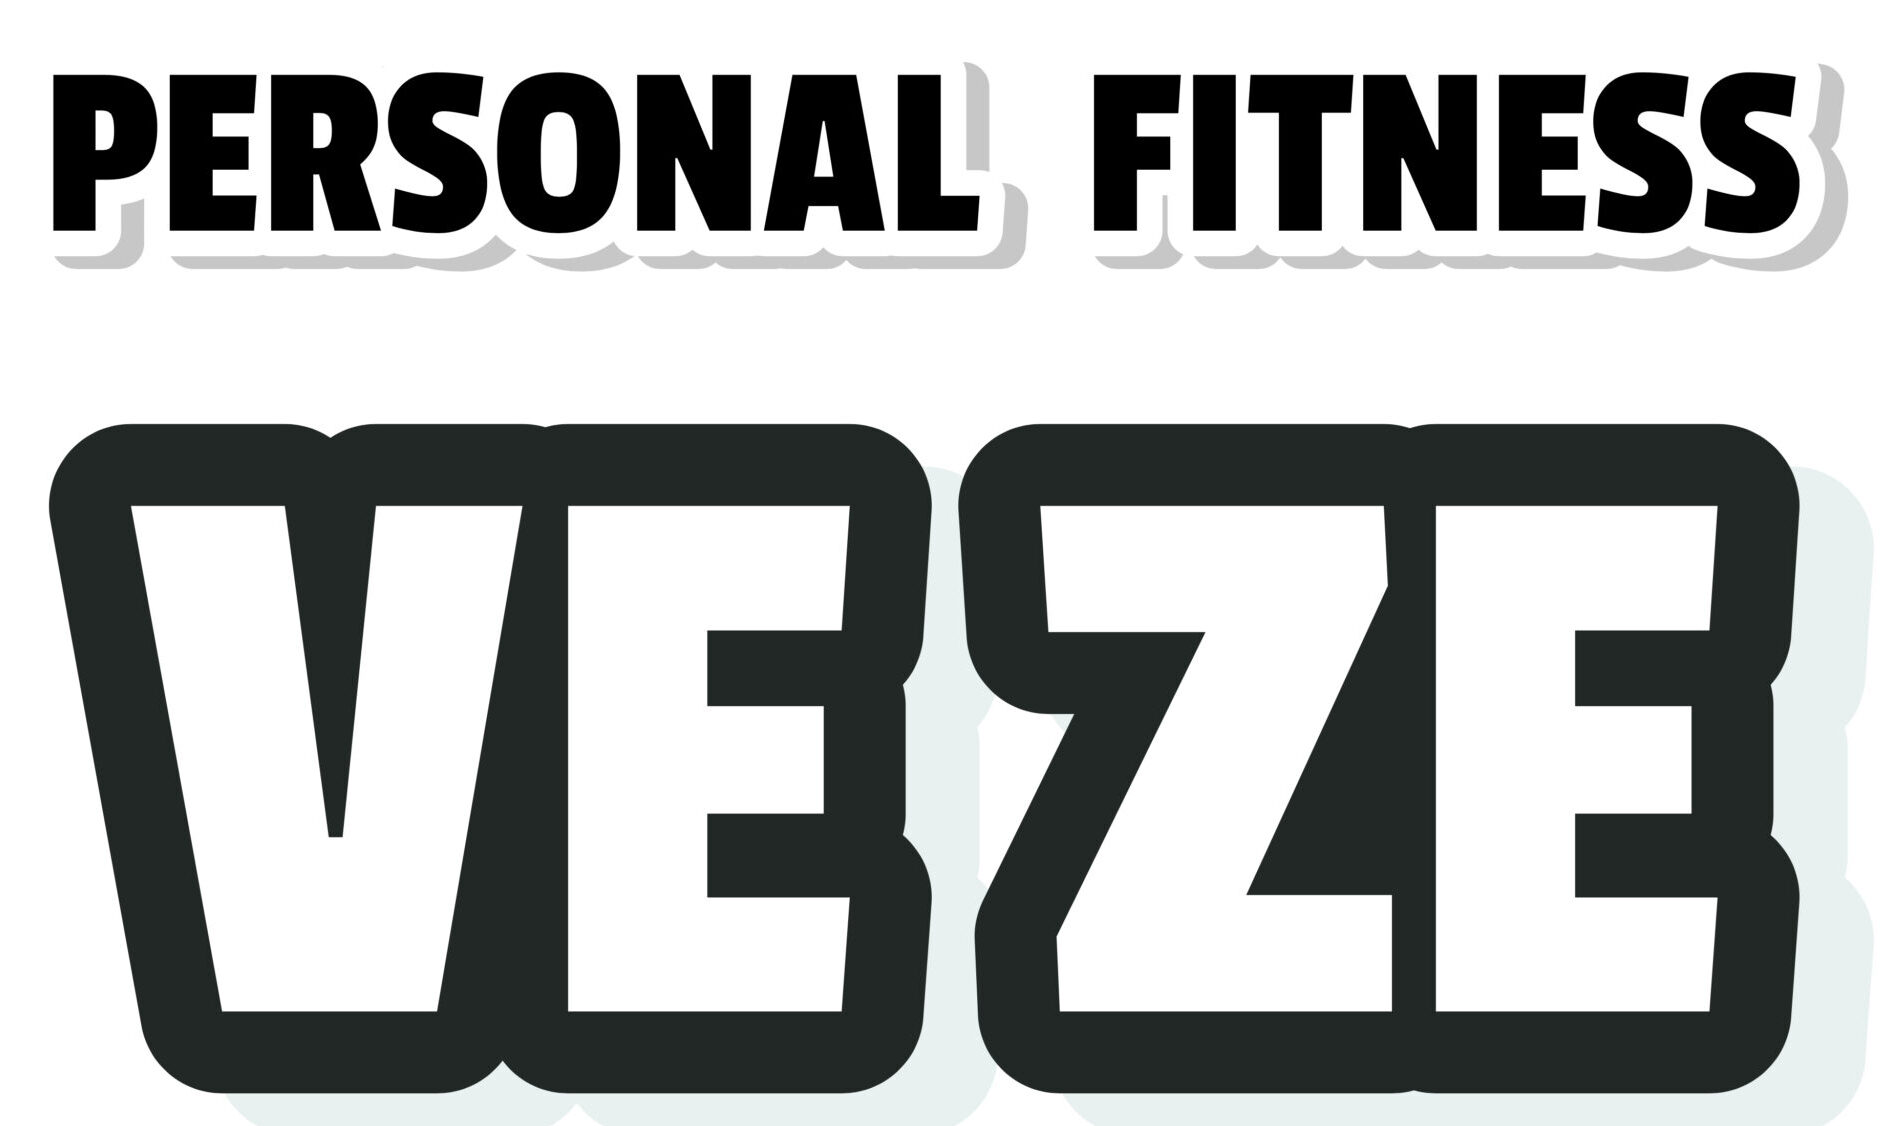 PERSONAL FITNESS   VE ZE